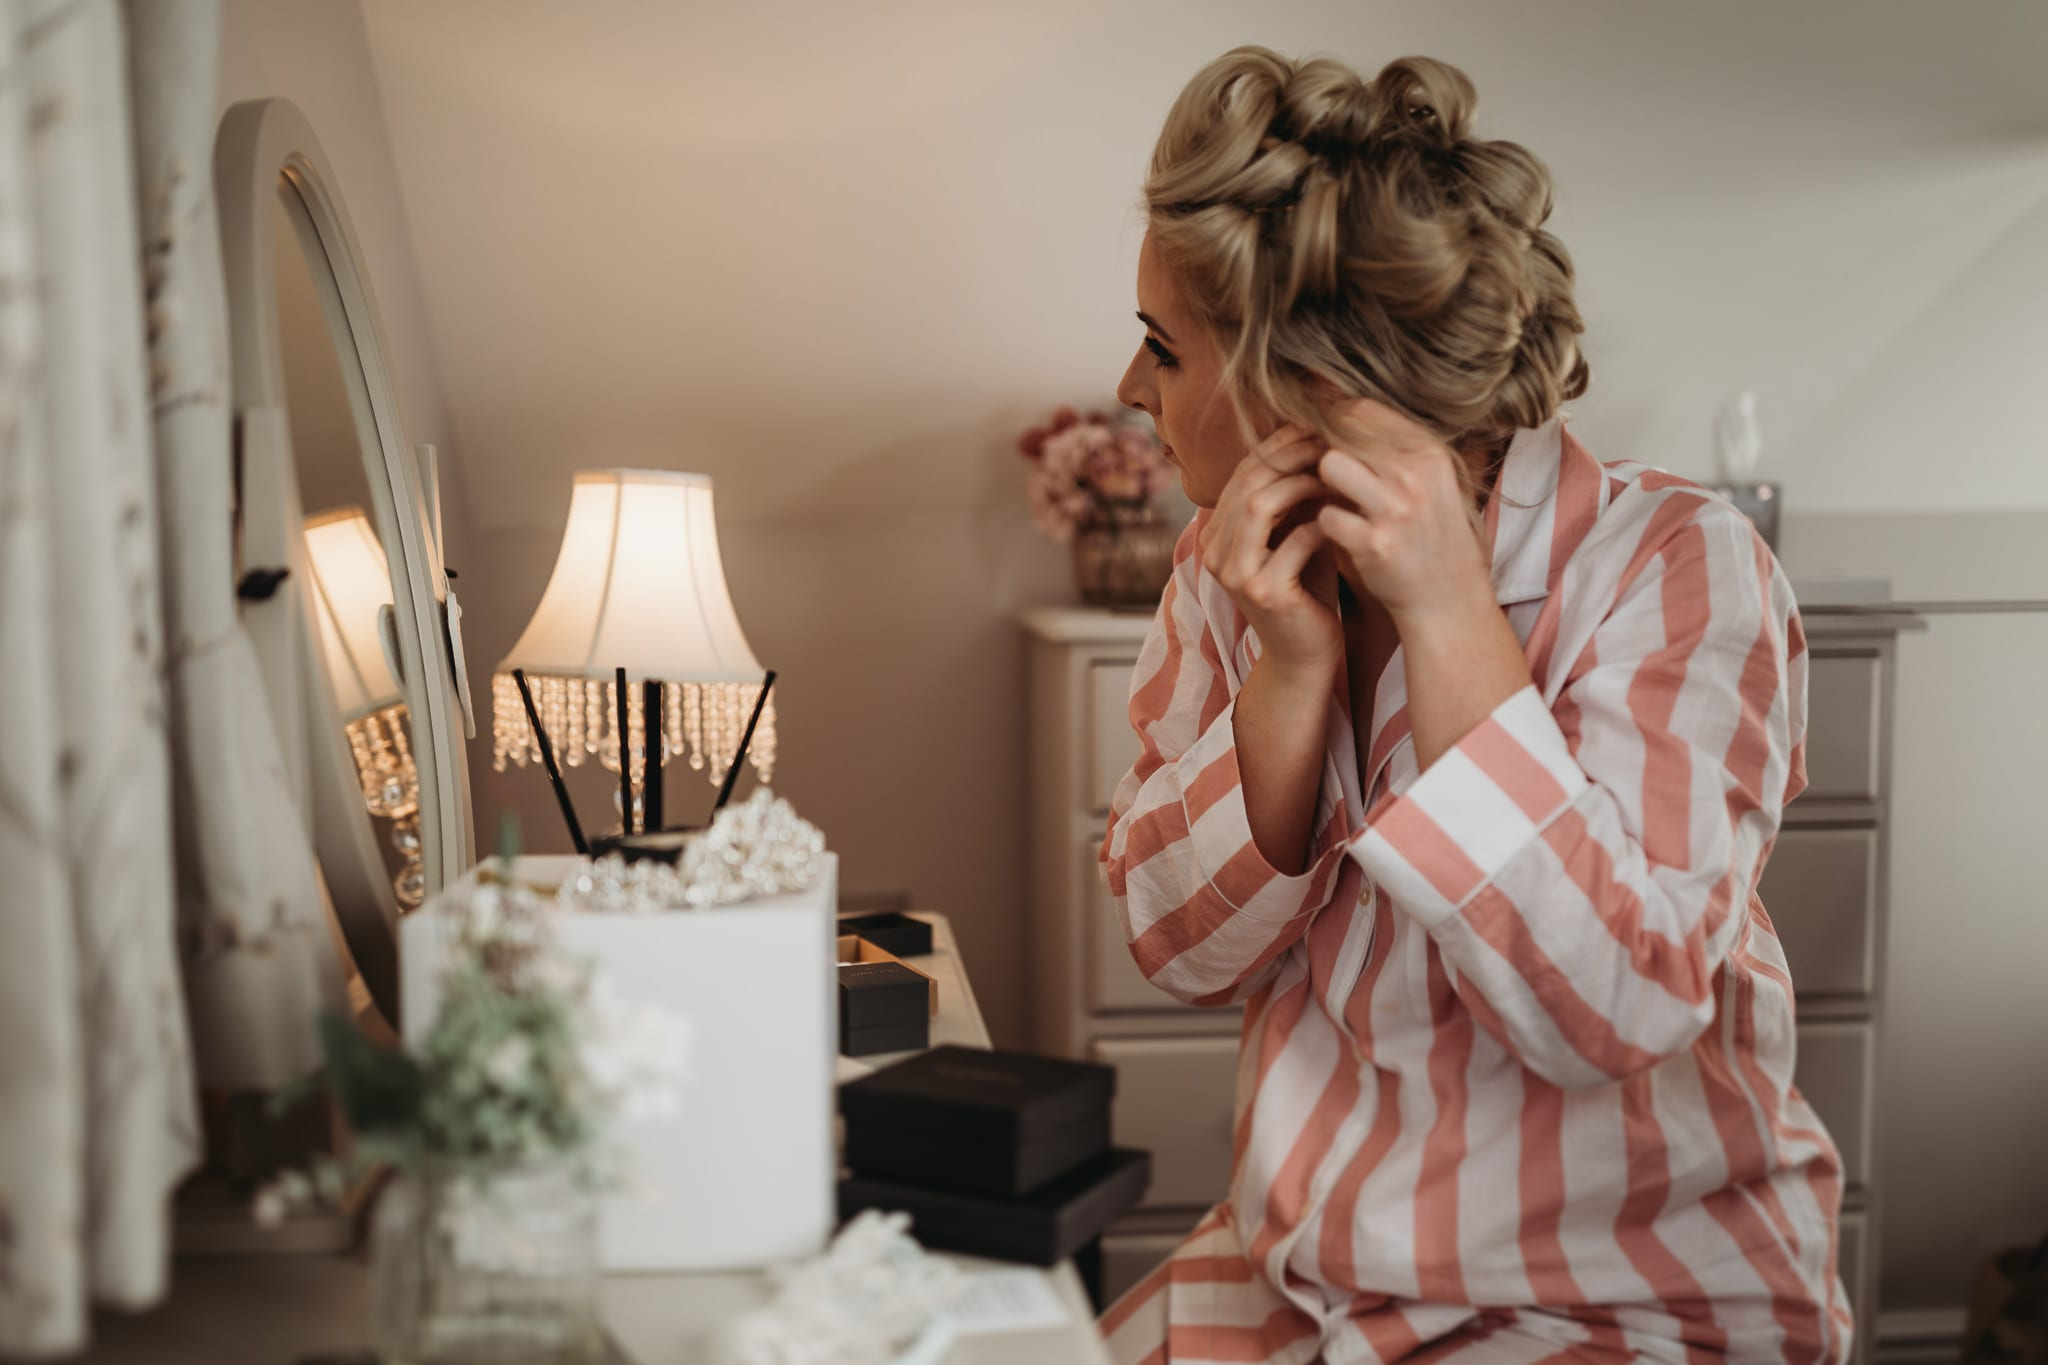 woman putting earrings on in front of a mirror